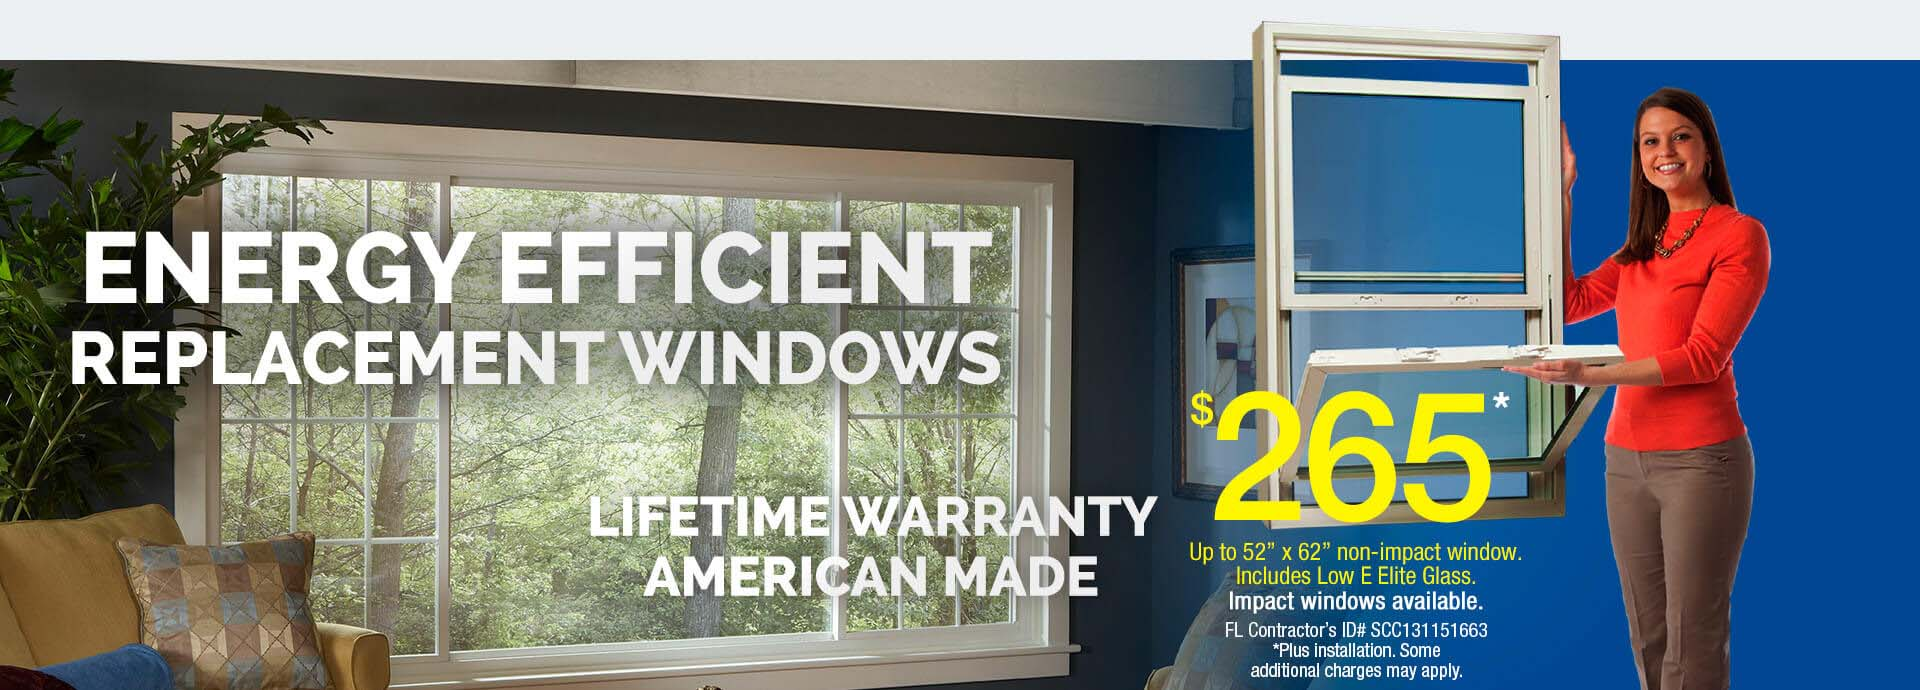 Replacement windows siding doors tampa fl window for Energy efficient replacement windows